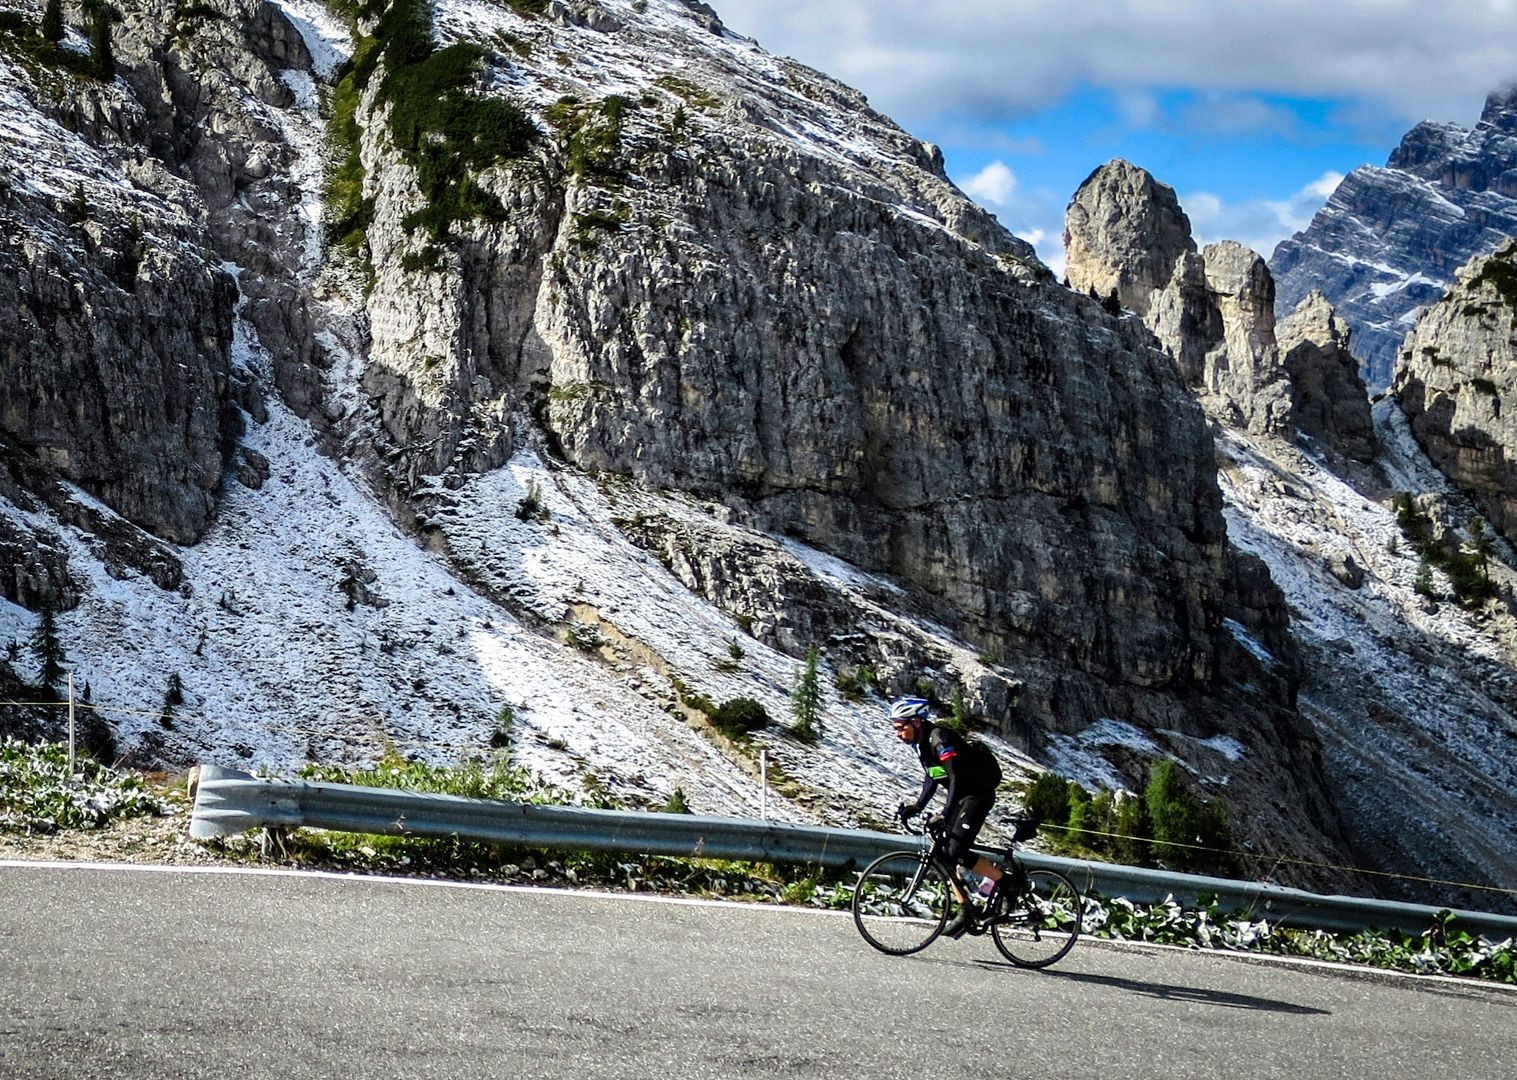 the-tres-cime-road-cycling-col-dolomites.jpg - Italy - Alps and Dolomites - Giants of the Giro - Guided Road Cycling Holiday - Road Cycling